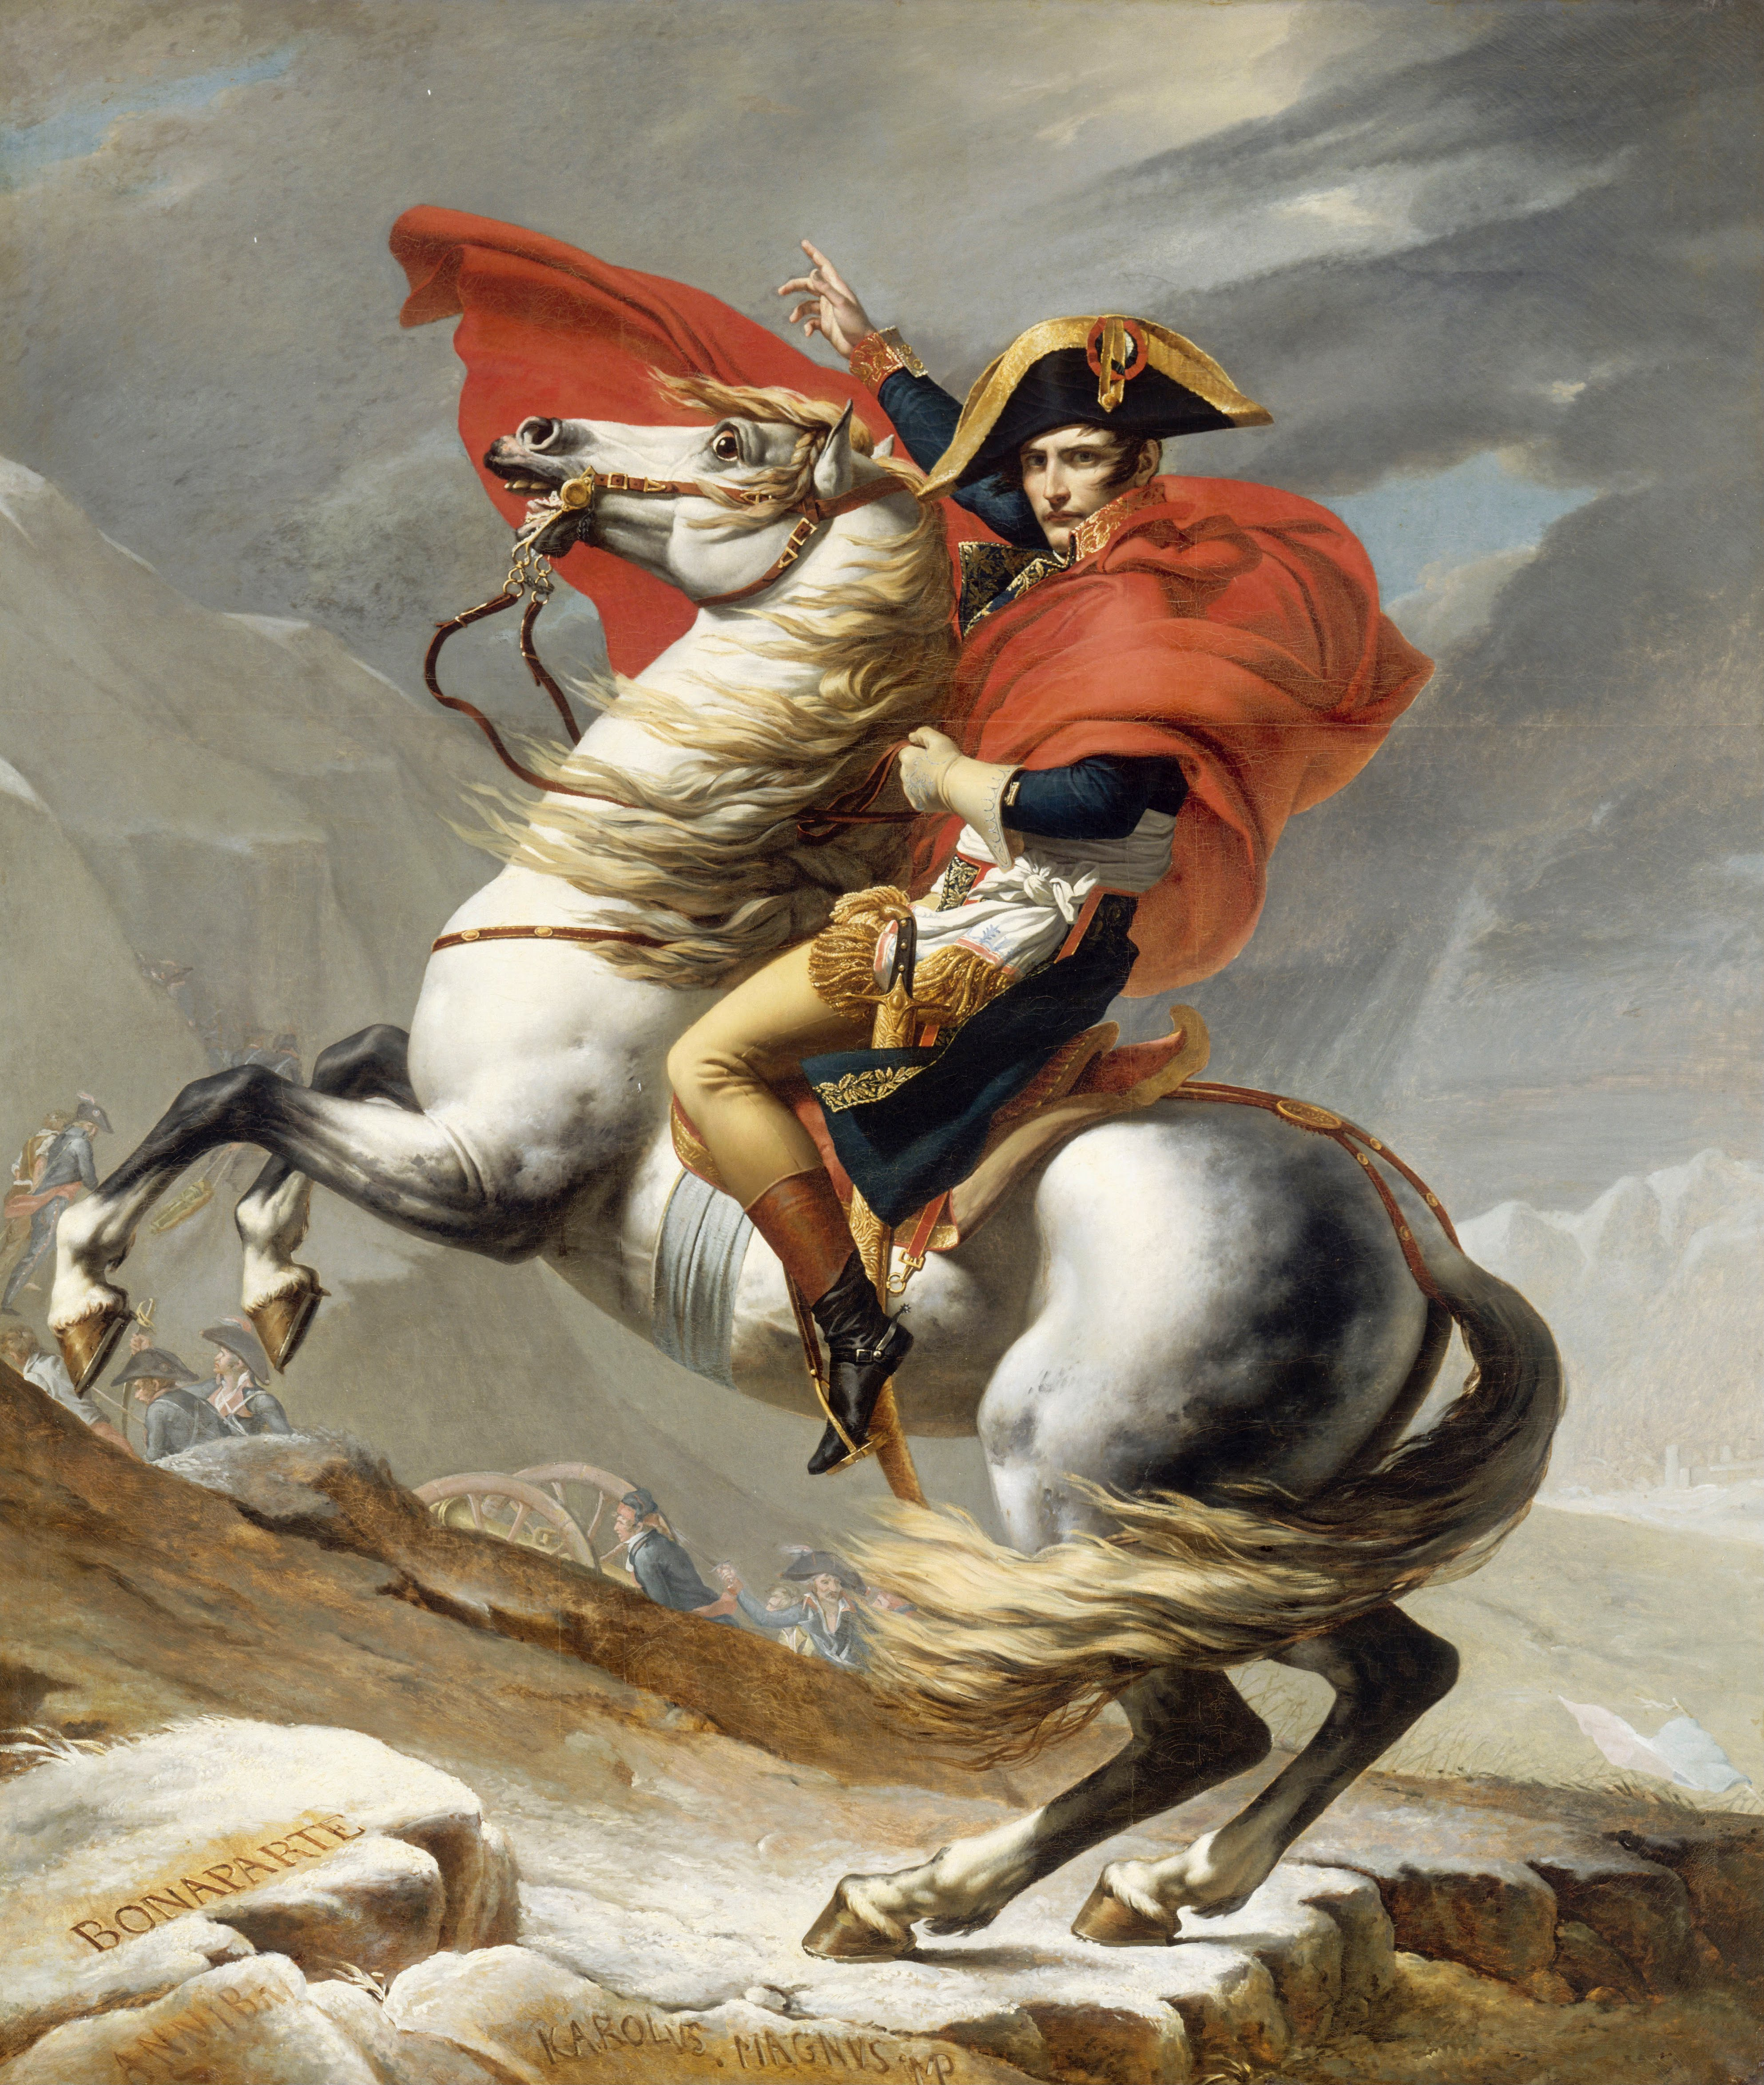 Napoleon Crossing the Alps, romantic version by Jacques-Louis David in 1805